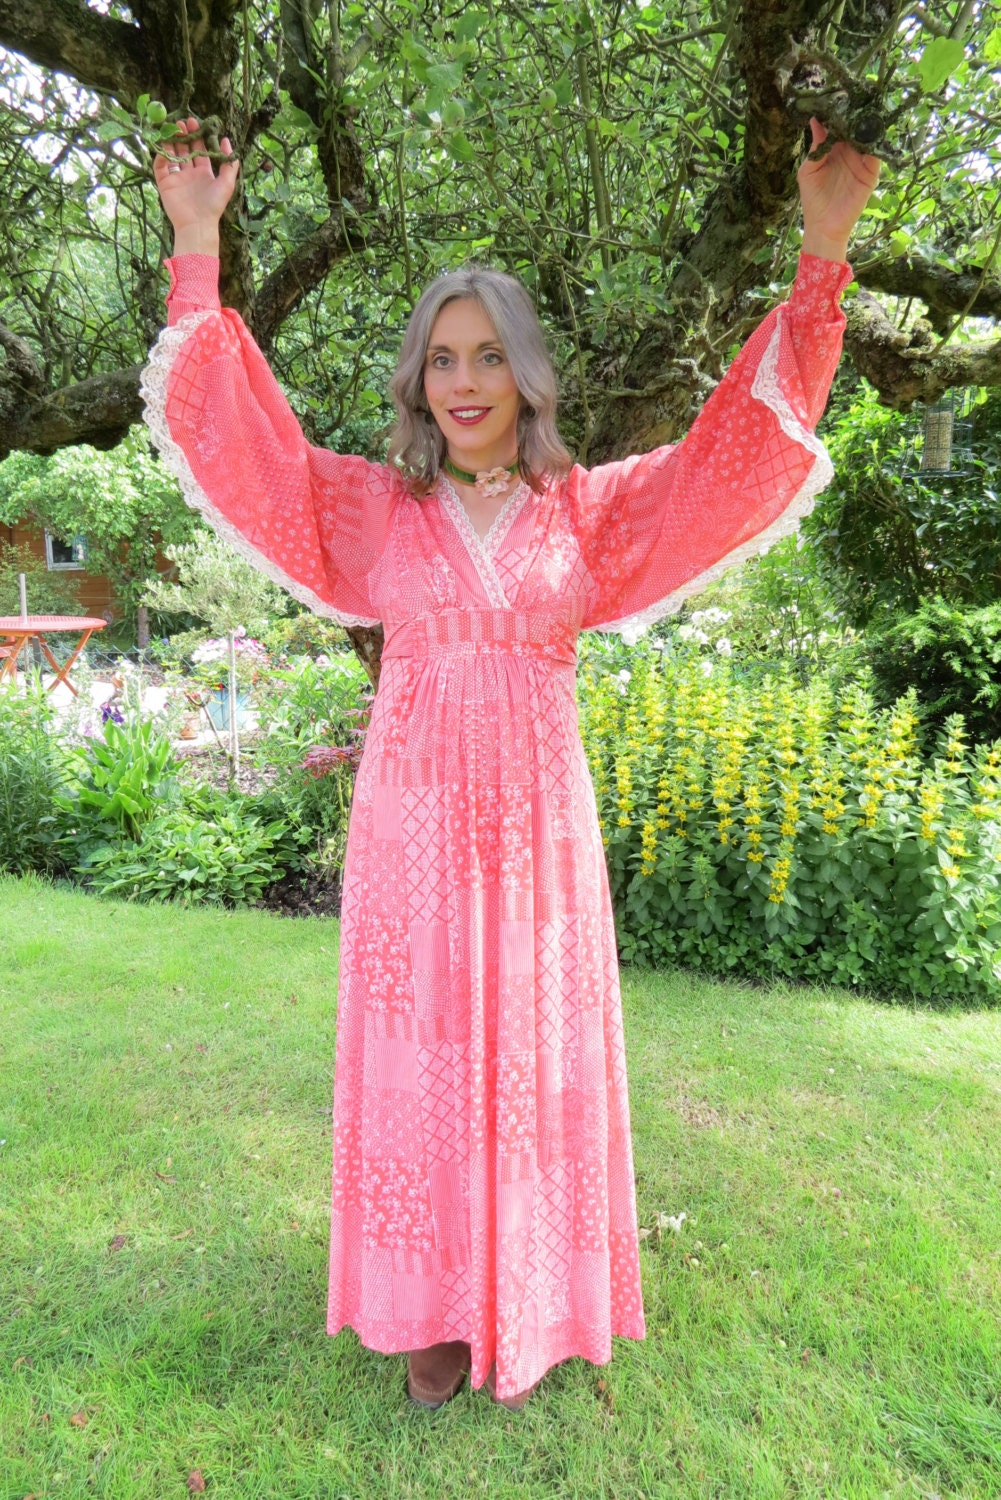 Vintage 1970s Orange Maxi Dress with Balloon Sleeves and Lace Trim Small